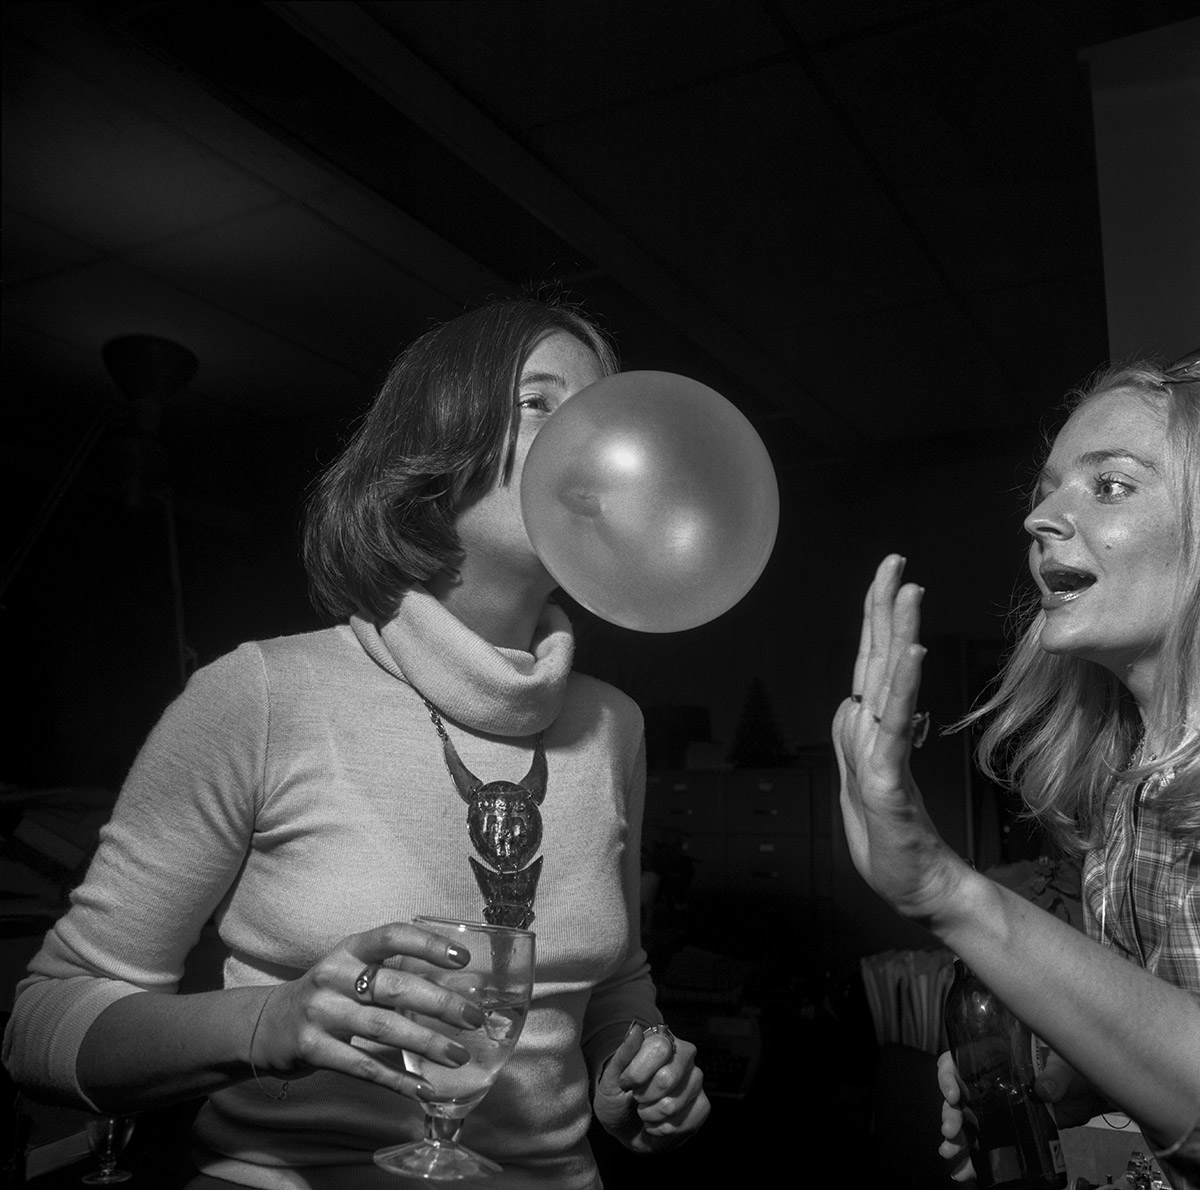 fotografia europea 2019 scatto larry fink